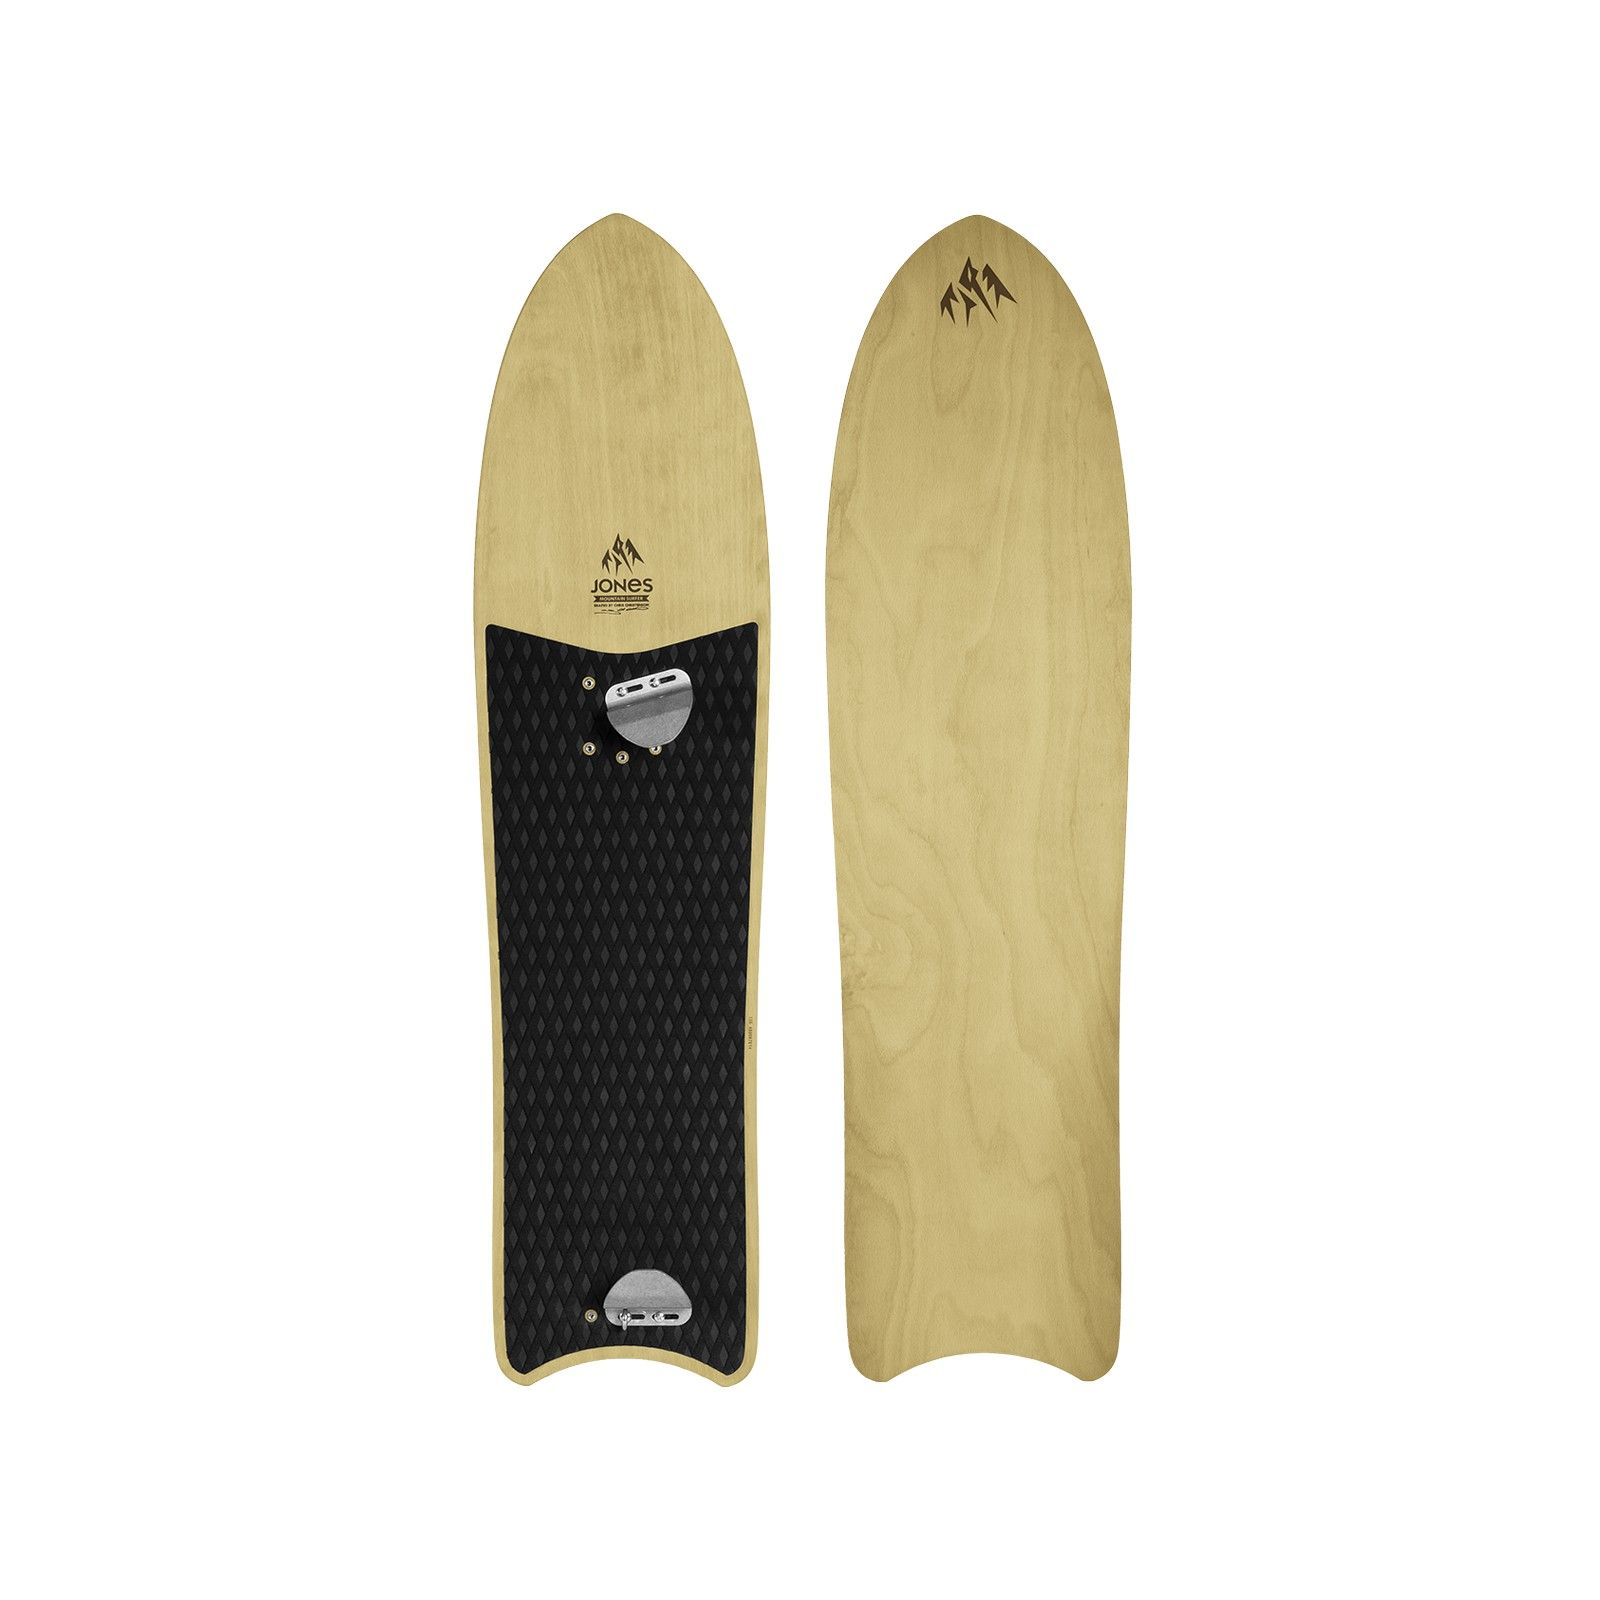 Jones Snowboards - The Journey Is The Reward - Mountain Surfer: all wood, no bindings, good for beginners, 70's snurfer style